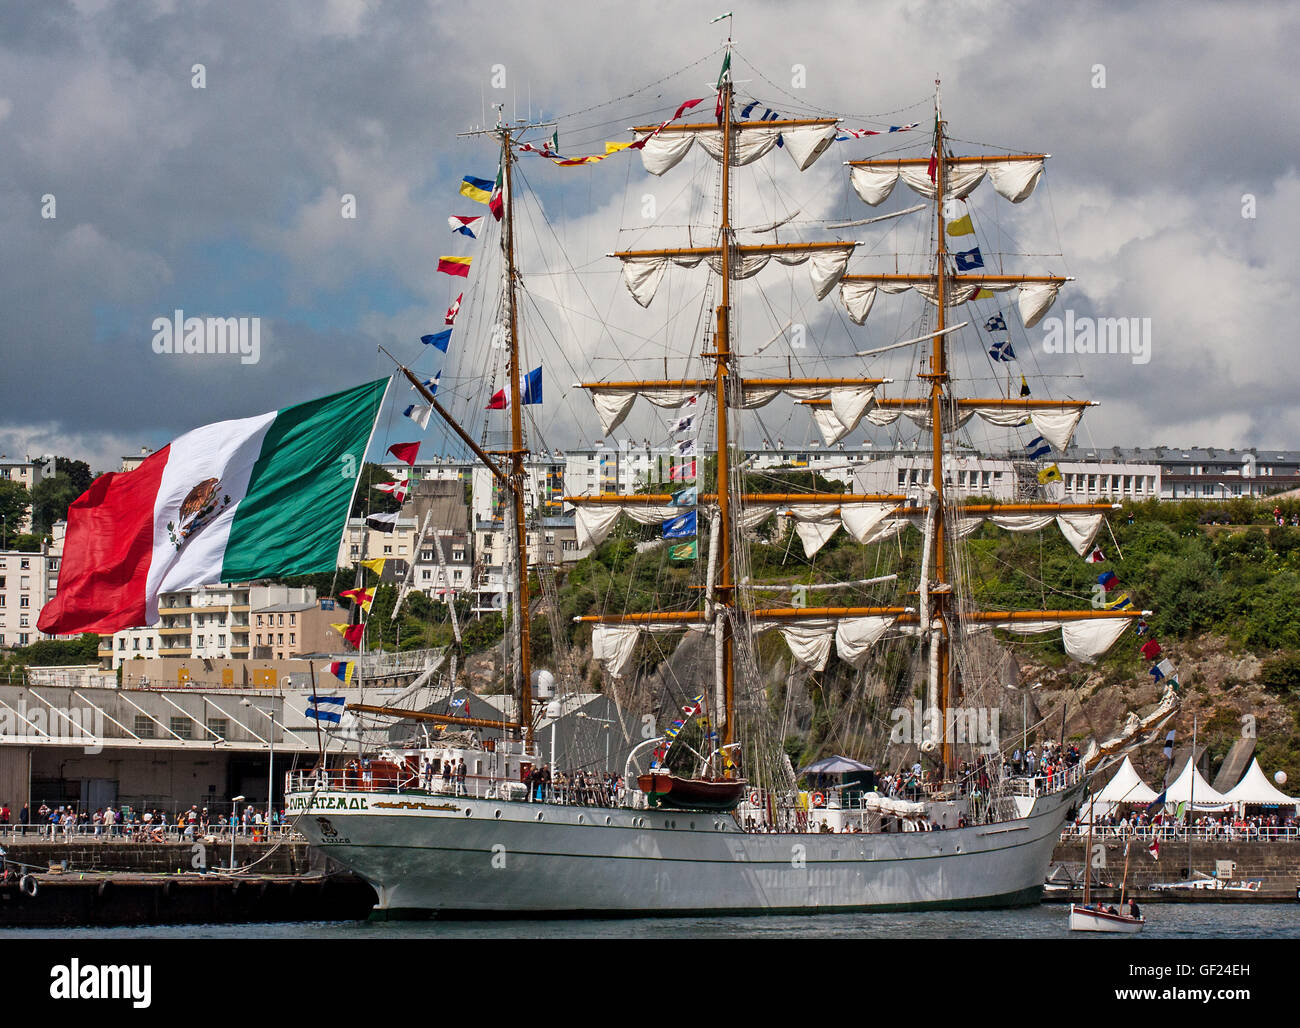 The Mexican ship Cuauhtemoc flying the Mexican flag in Brest harbor during the Tall Ships celebration 2016 - Stock Image